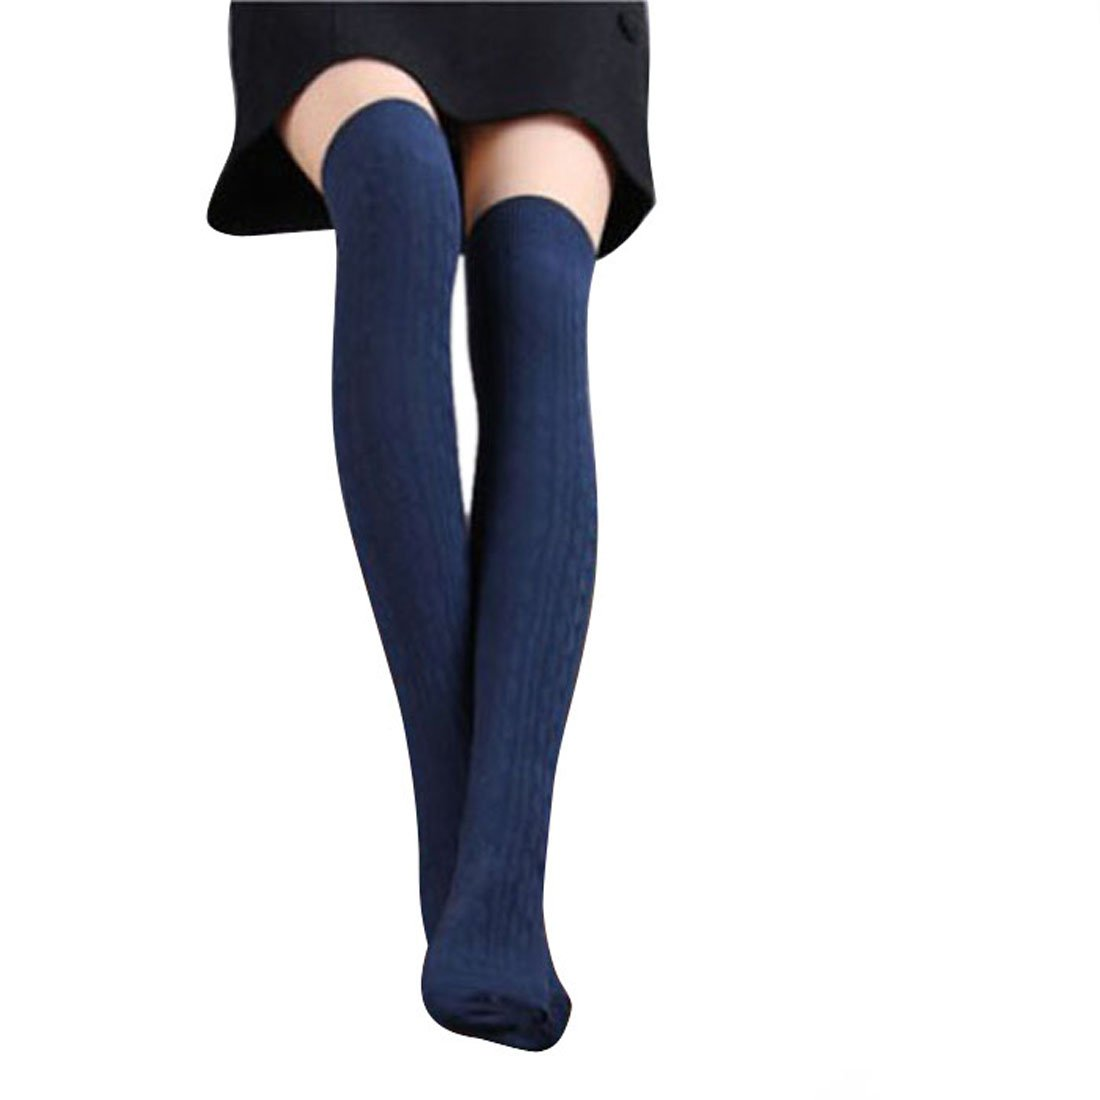 Women Knit Knee Boot Cotton Thigh High Socks Lot Leg Warmer (Navy)